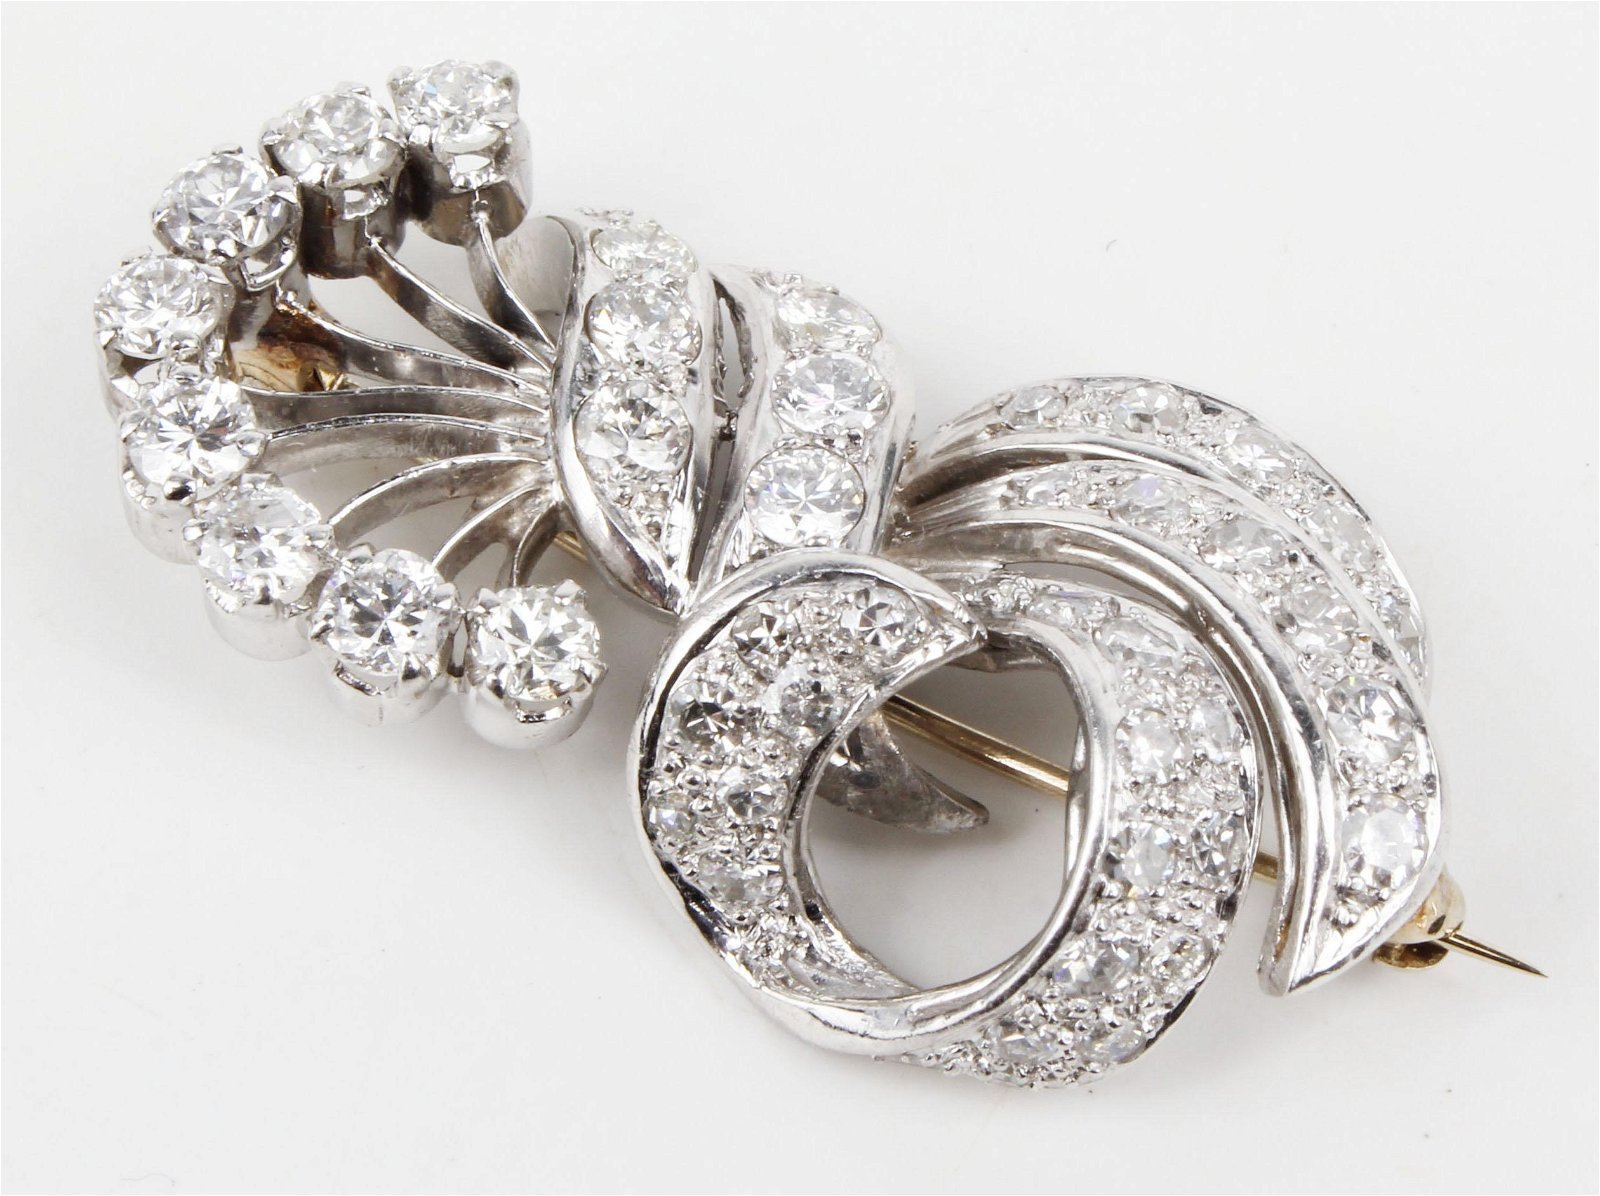 LADIES 2CT DIAMOND AND PLATINUM ANTIQUE BROACH